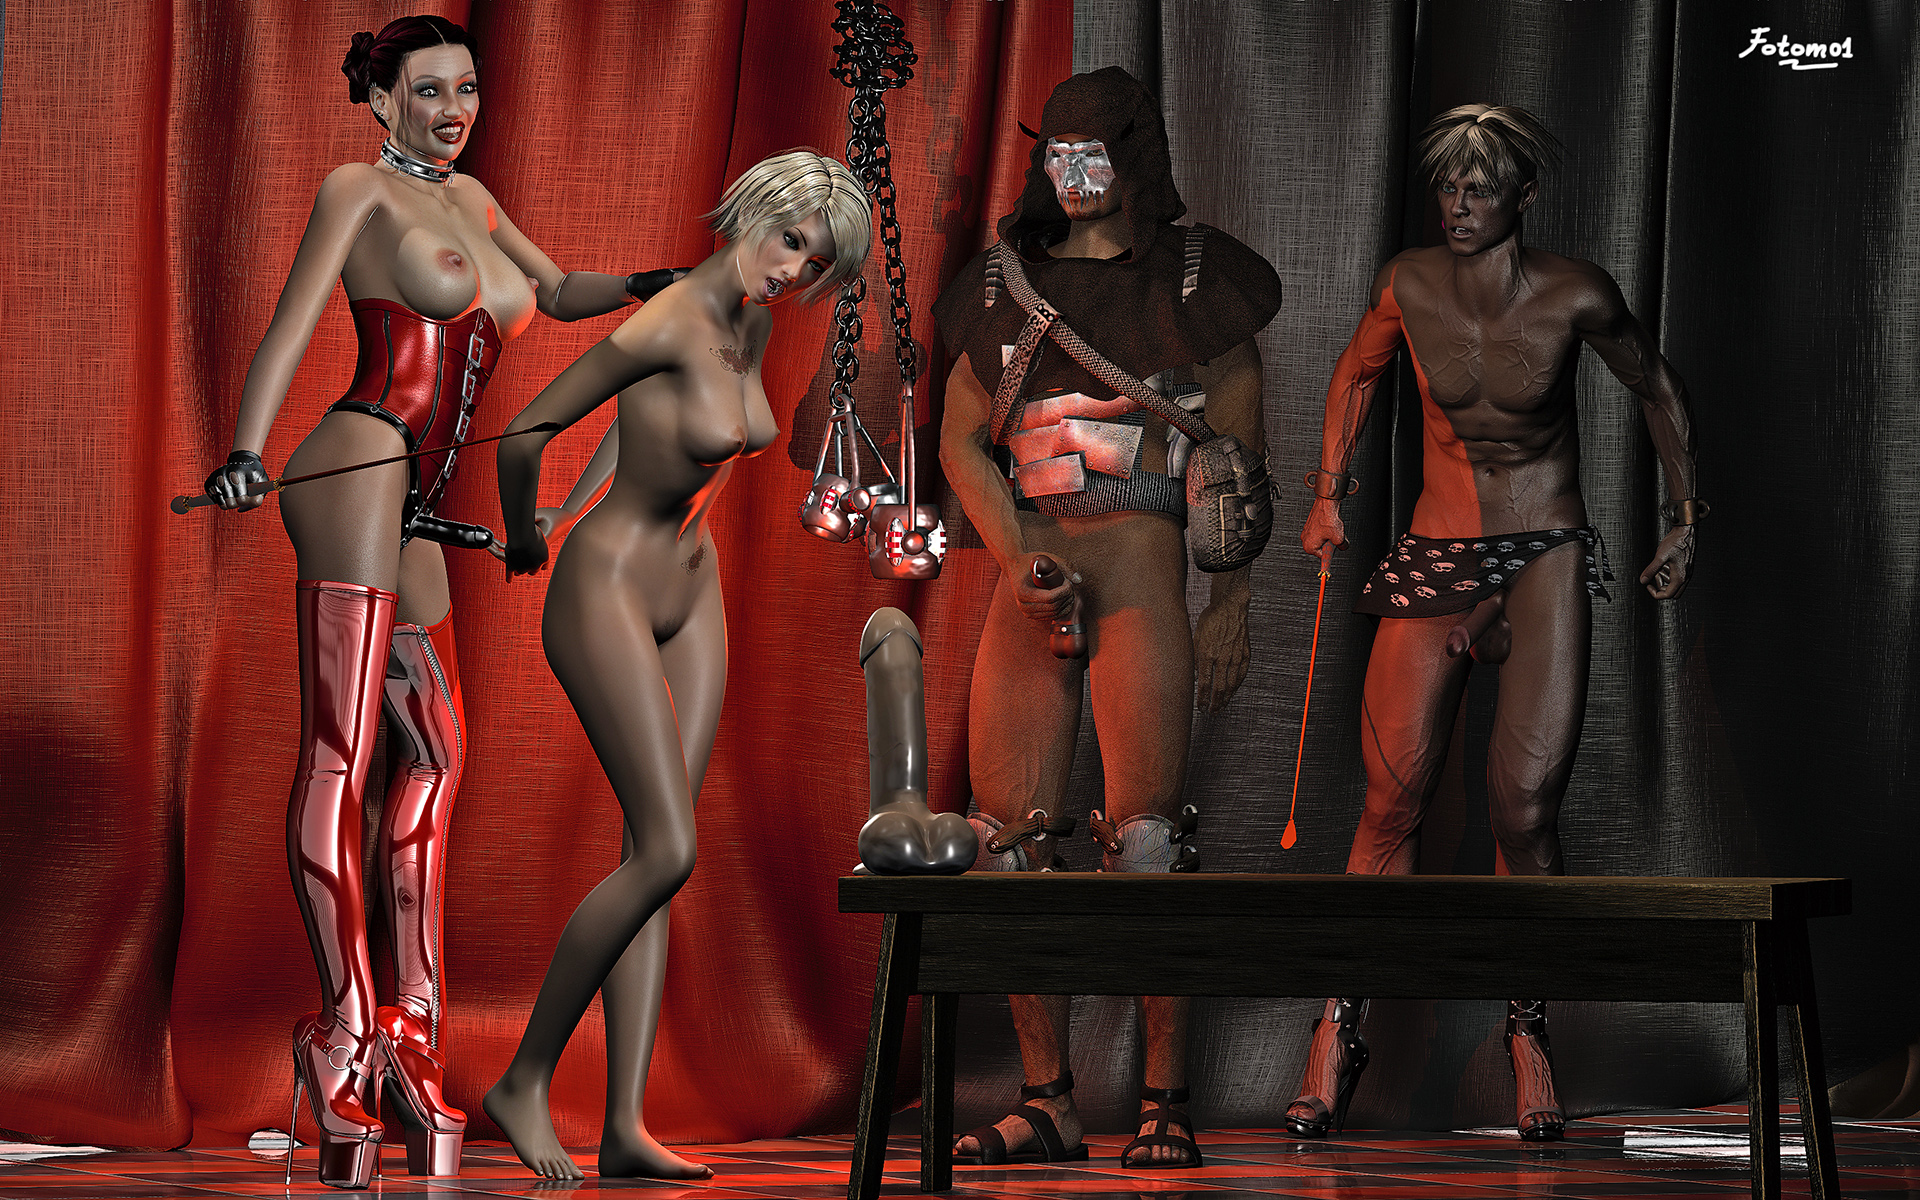 Nude Images In big brother video